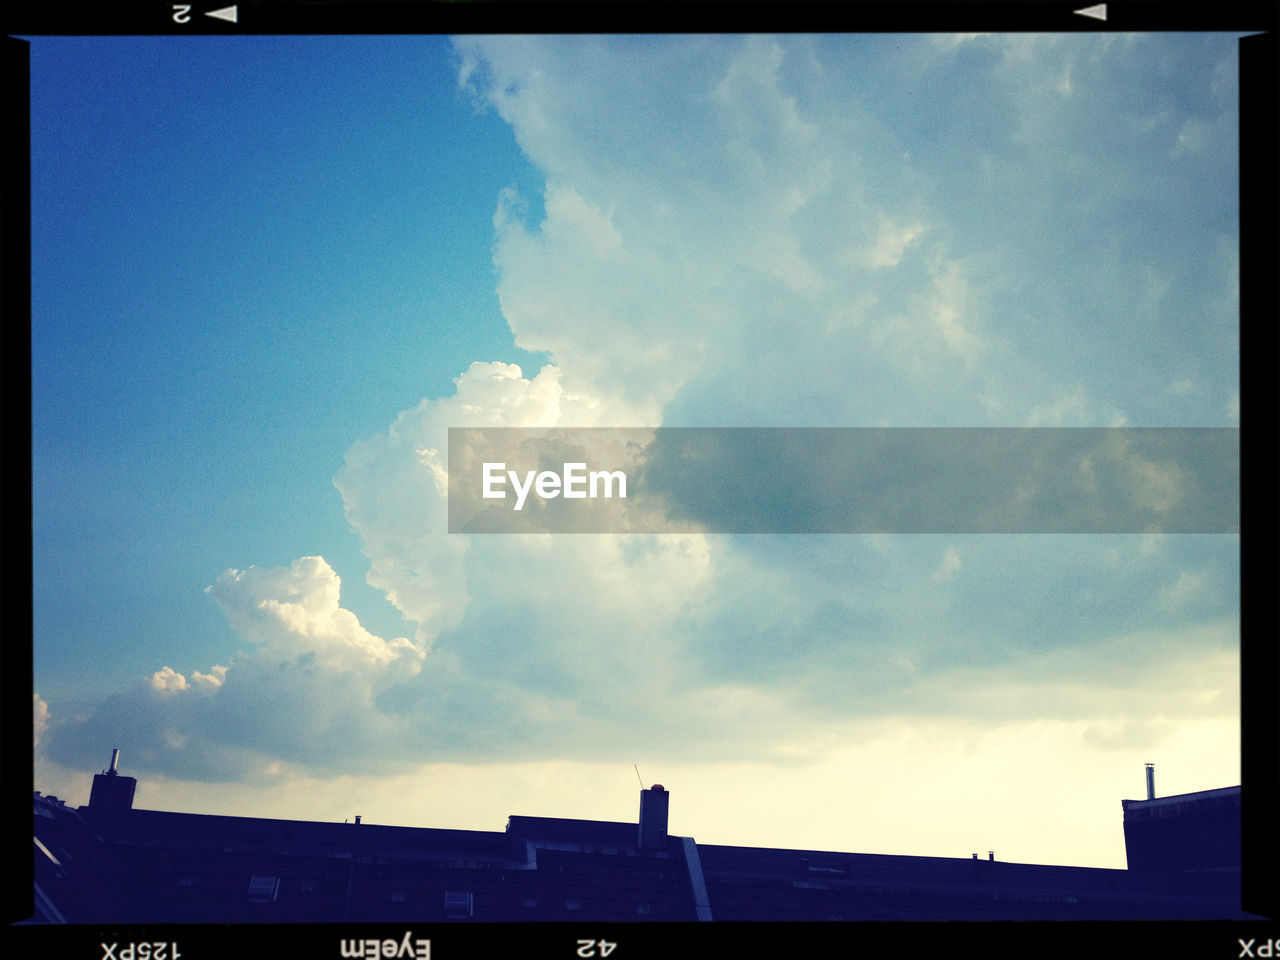 sky, cloud - sky, low angle view, no people, day, outdoors, nature, beauty in nature, architecture